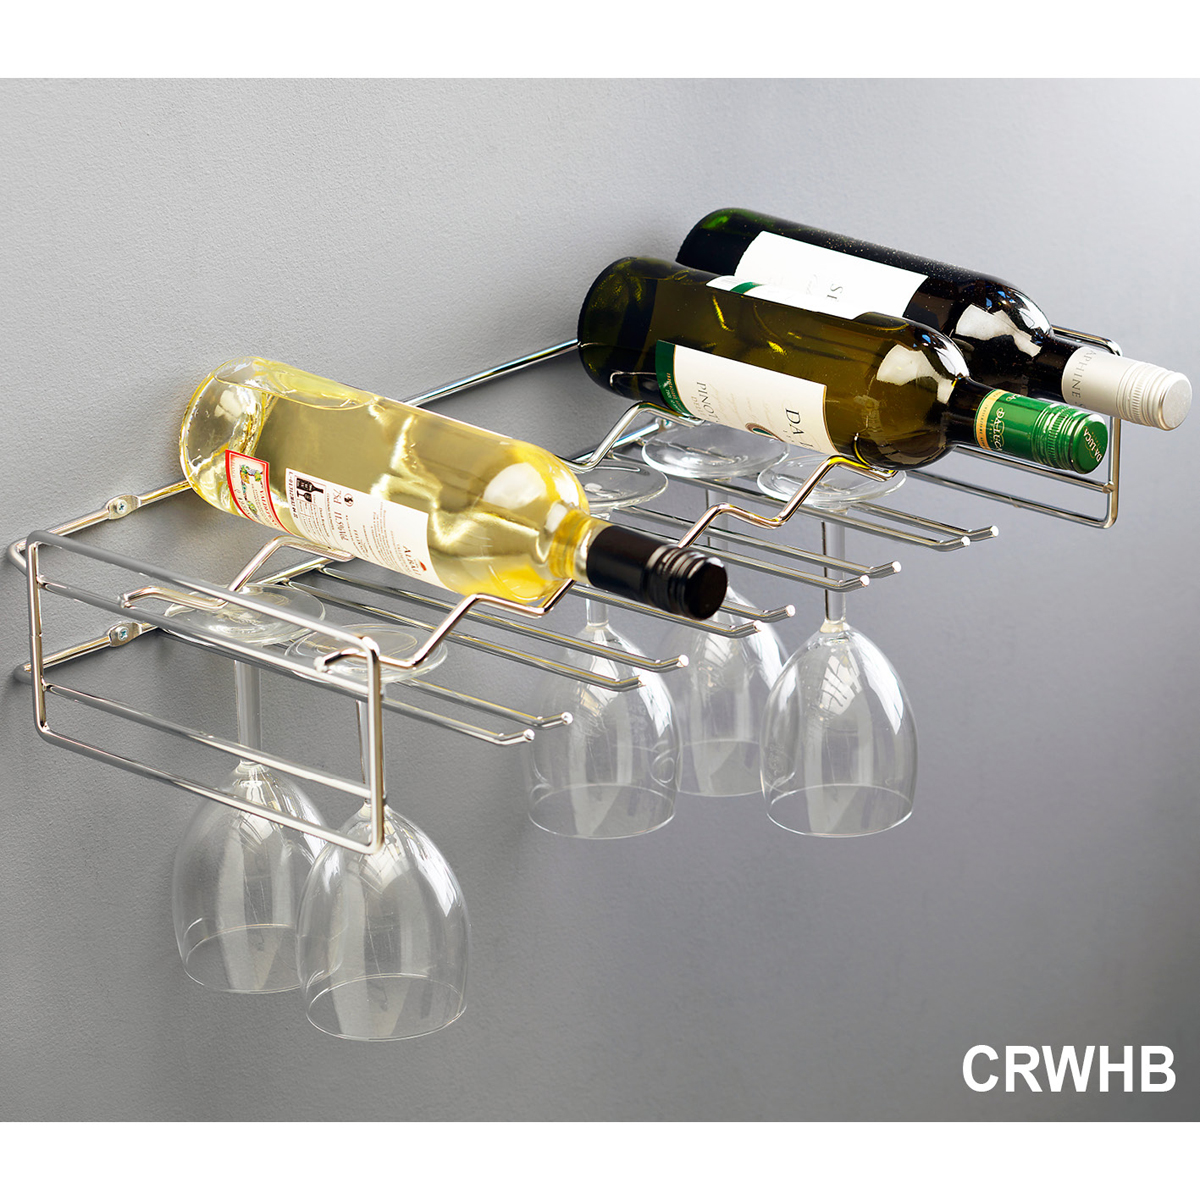 Floating Wine Bottle Holder Plans http://www.ebay.co.uk/itm/Floating-Wine-Bottle-Glasses-Wall-Holder-Rack-/221116665747